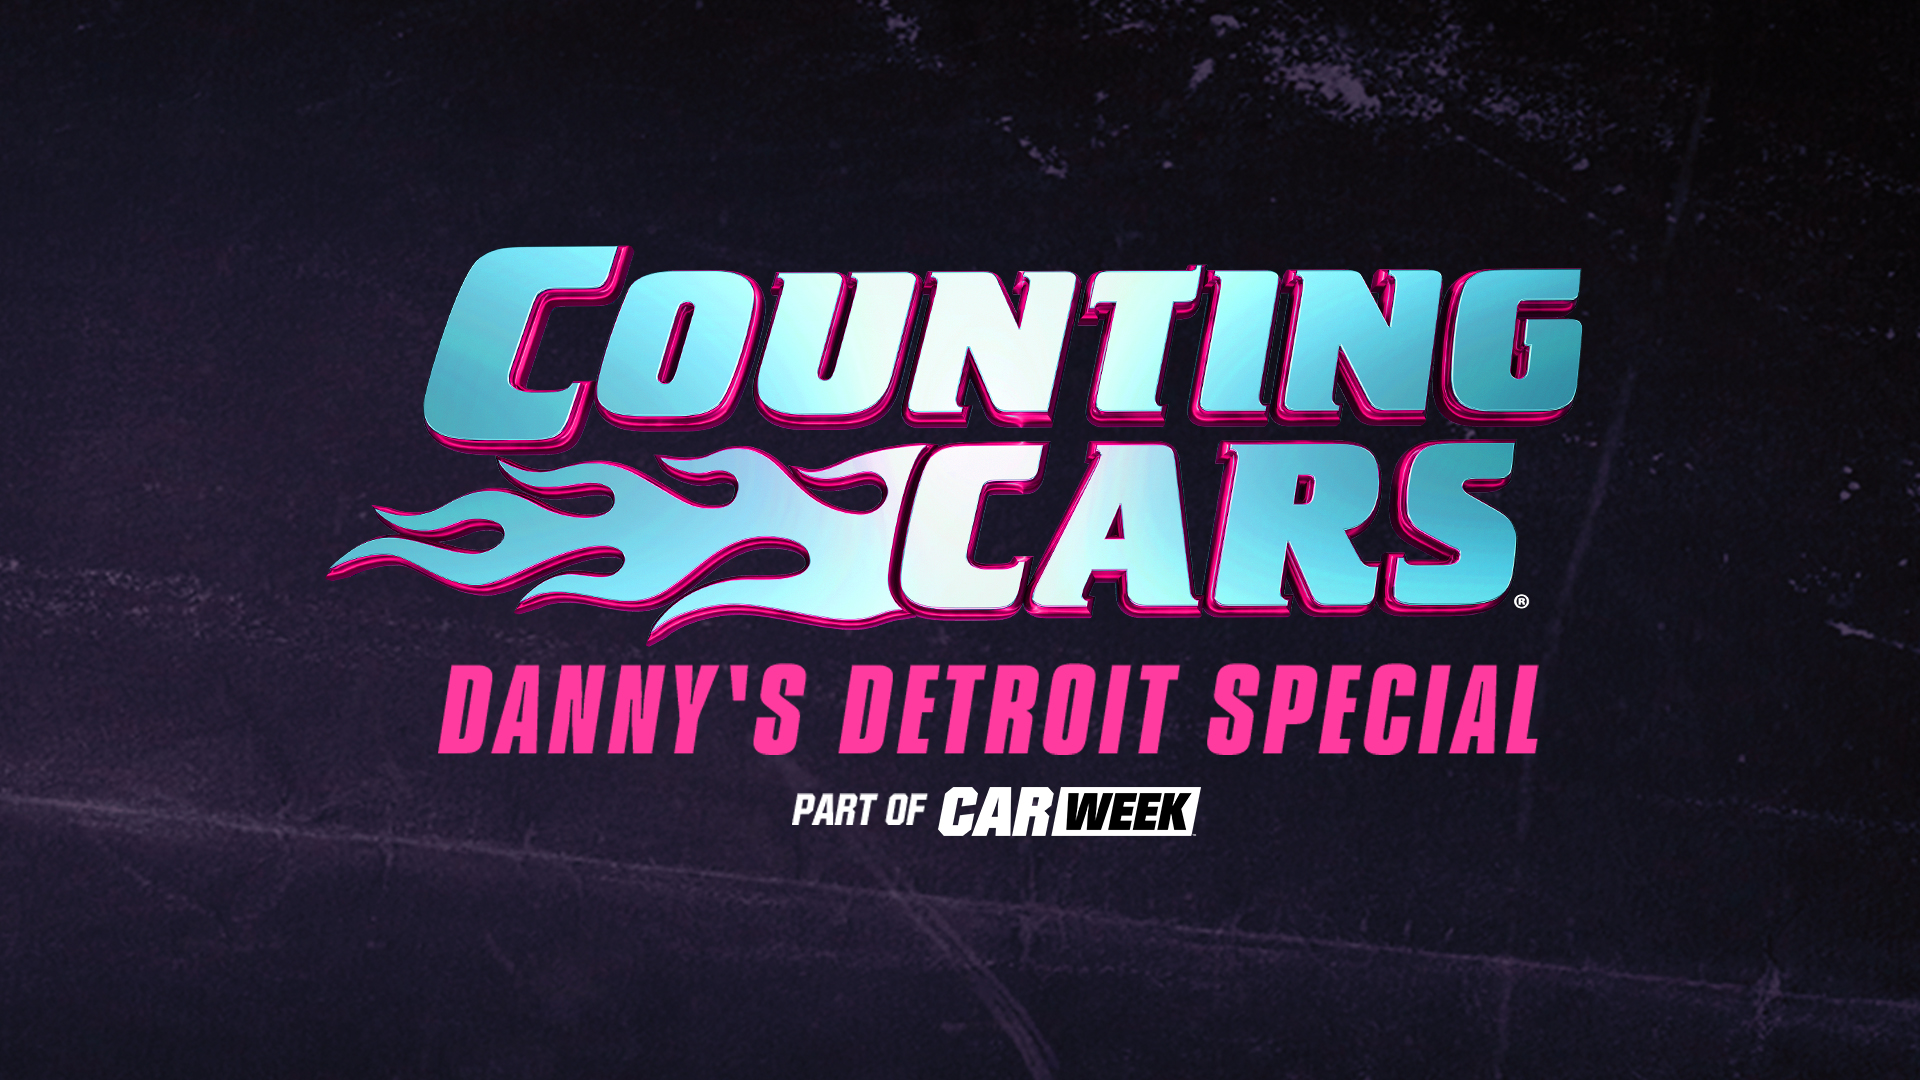 Counting Cars Full Episodes, Video & More | HISTORY